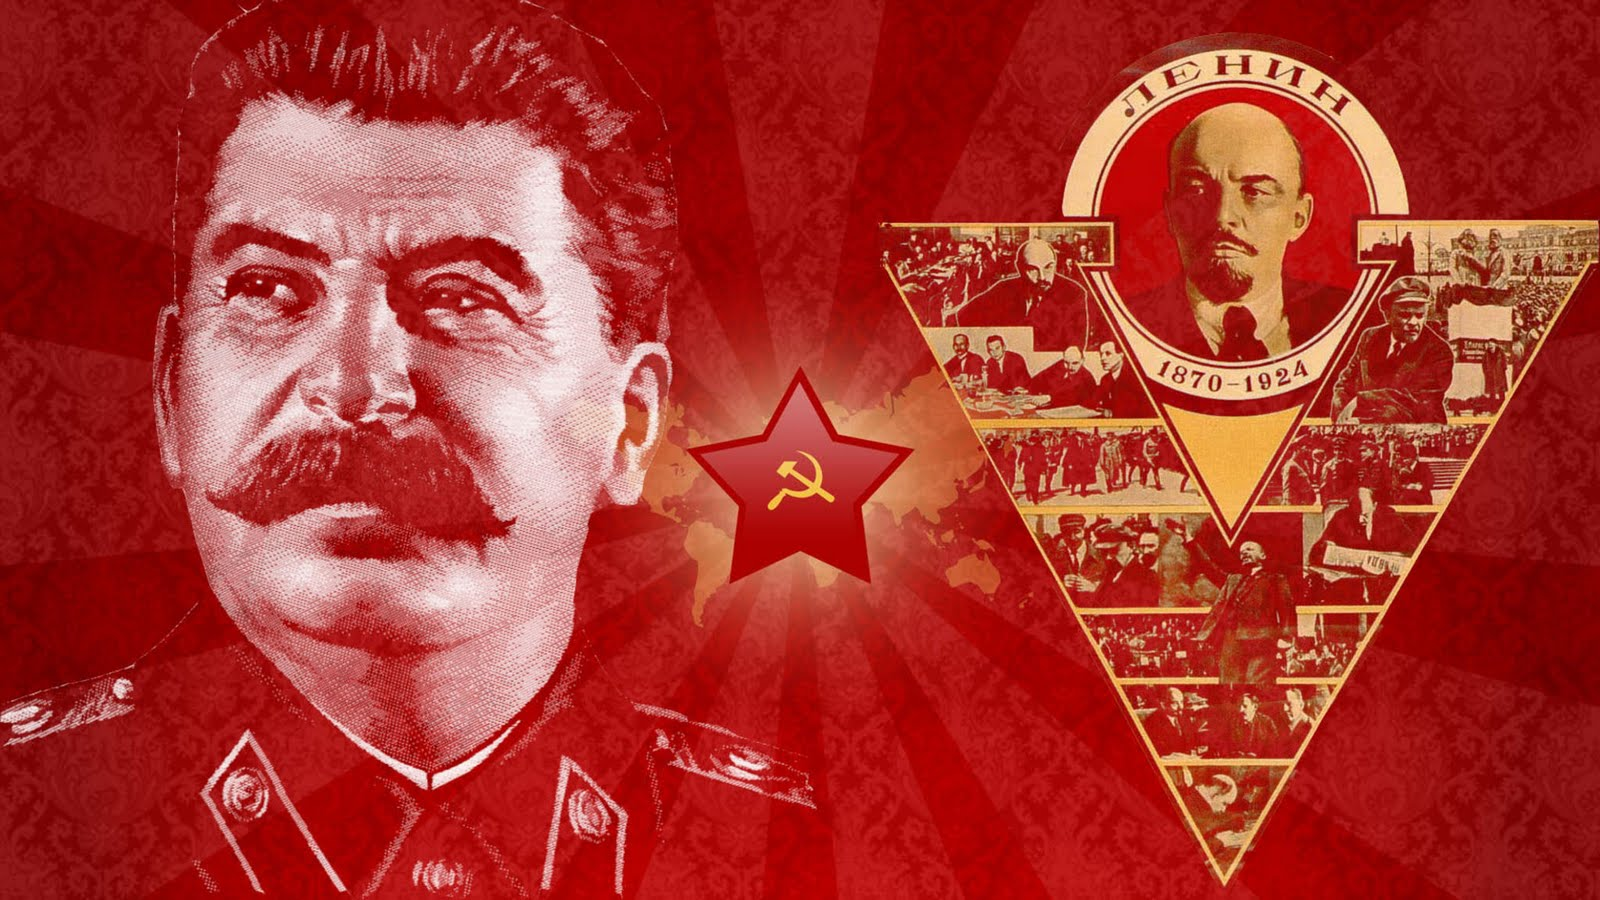 stalin vs lenin essays Essay on communism under stalin vs mao  both inspired by the marxist ideologies of lenin both stalin and mao recognized the economic backwardness of their.